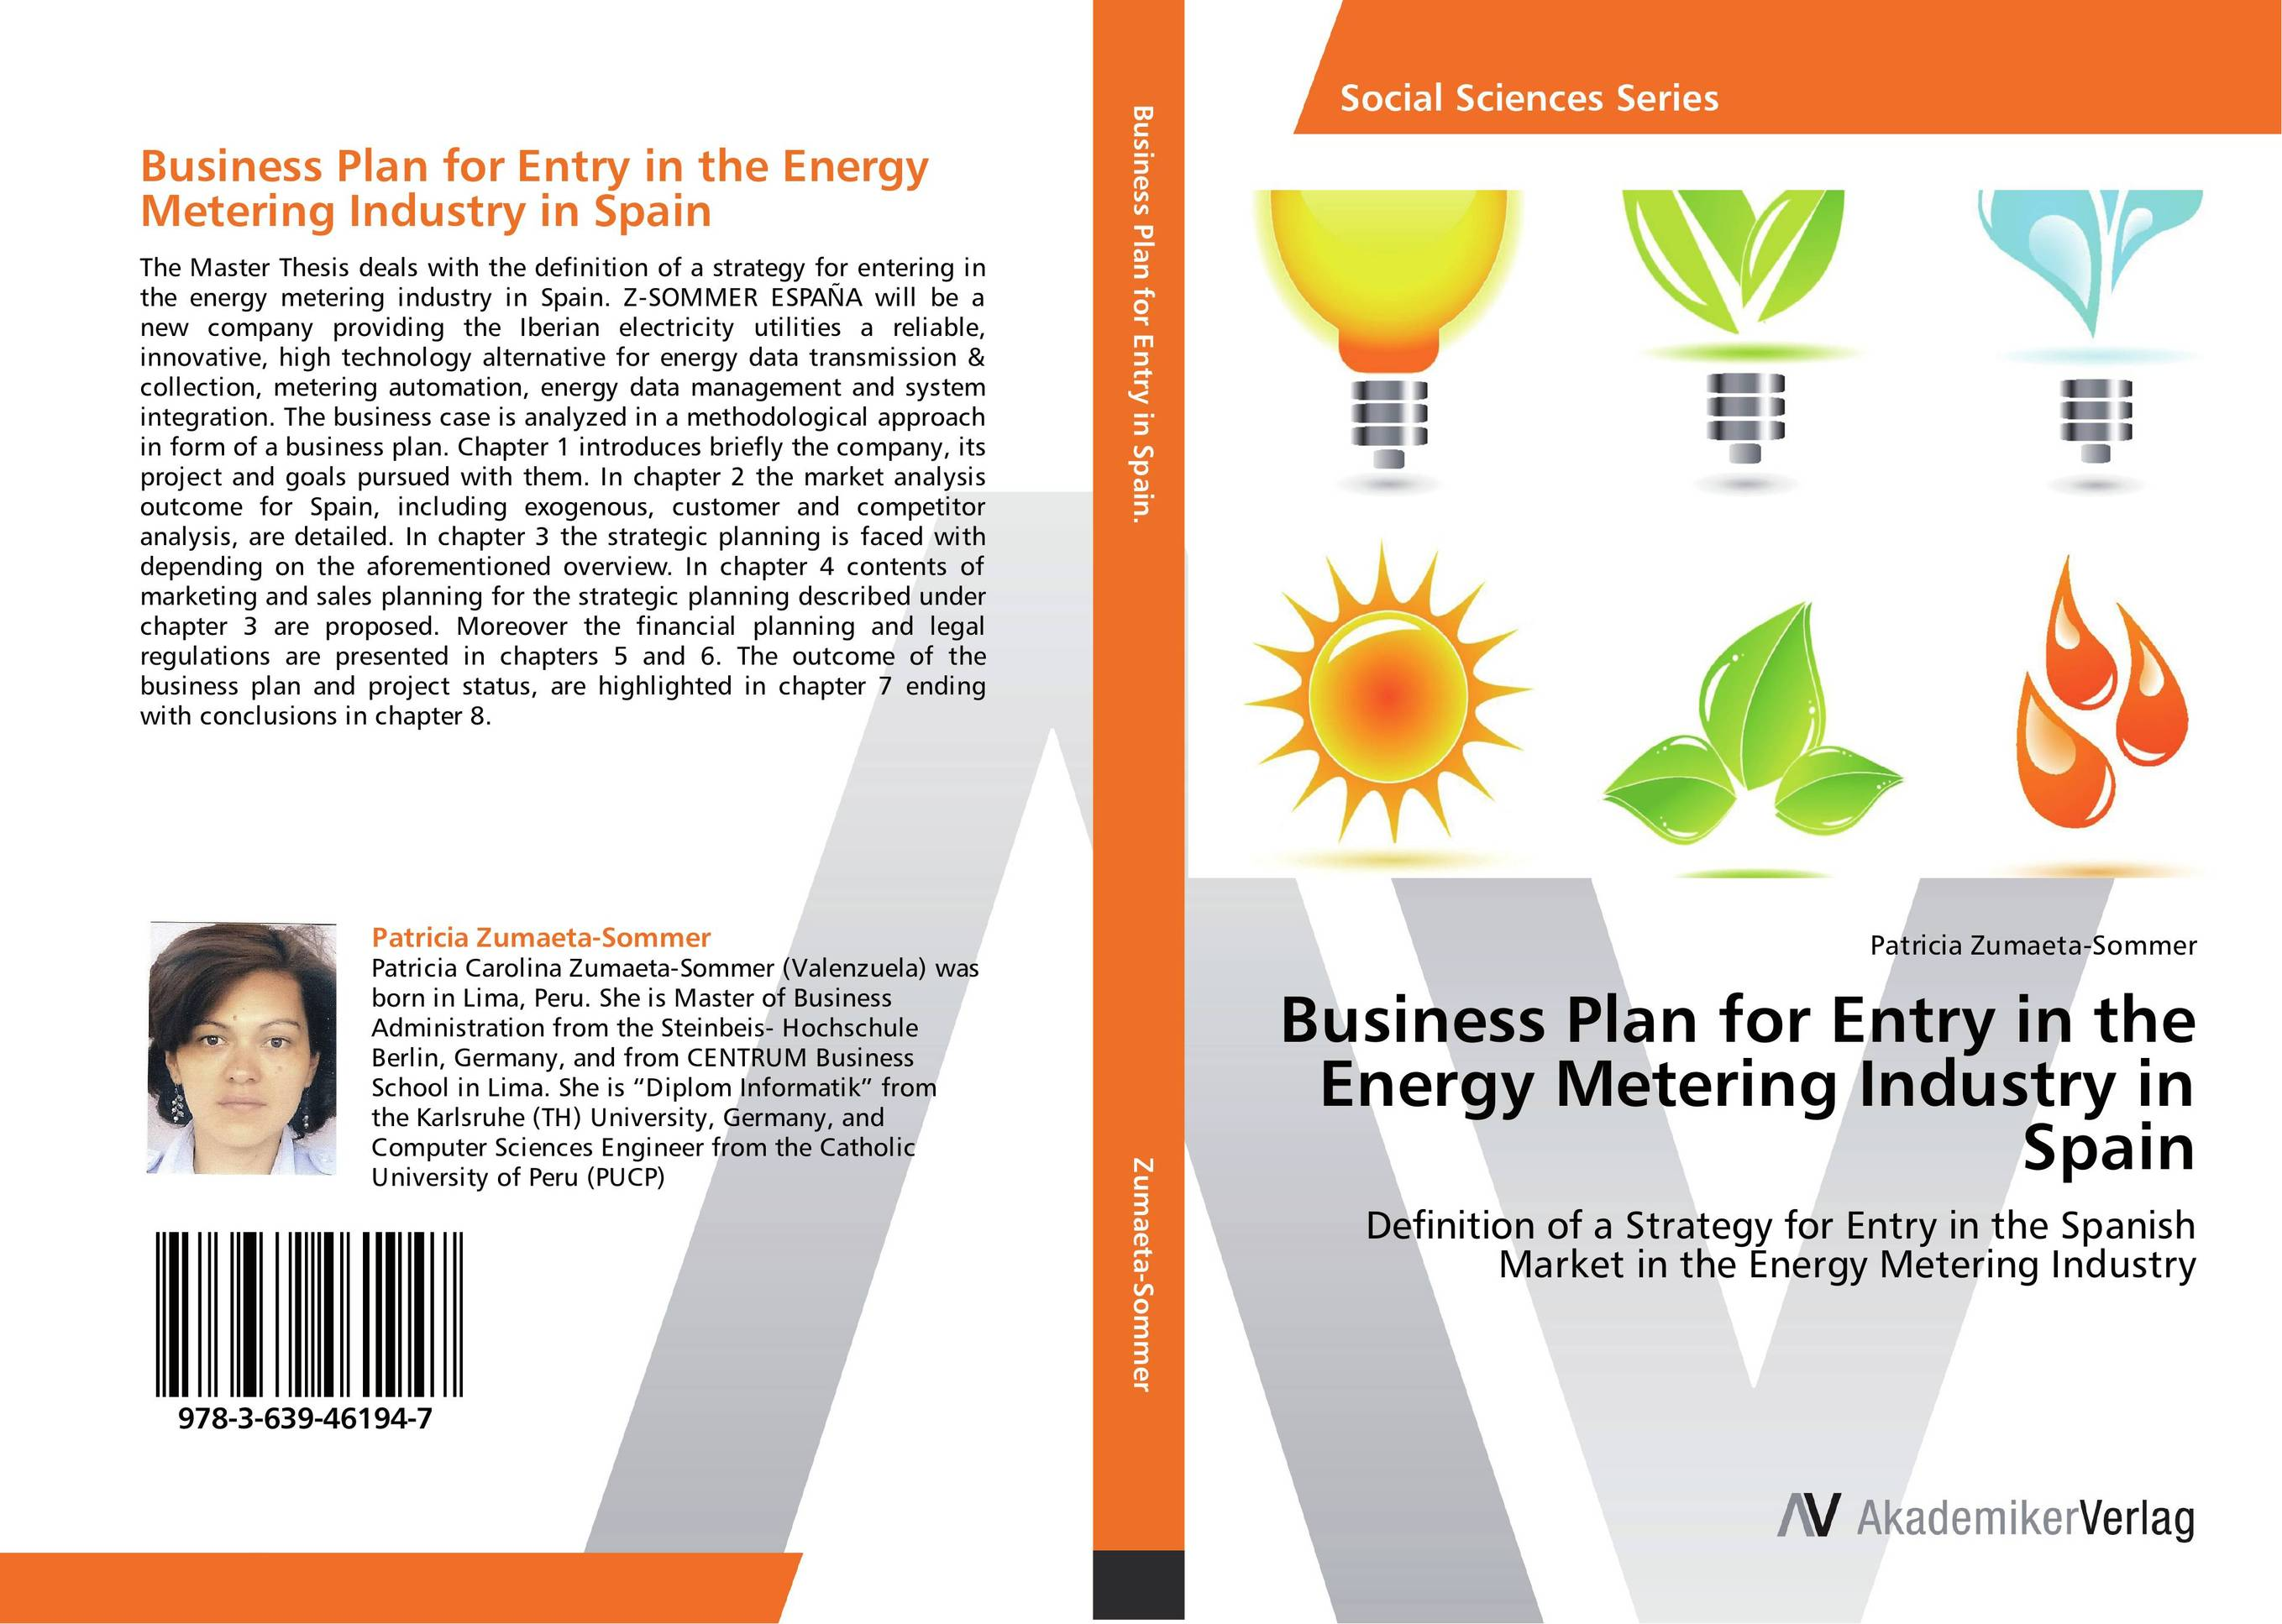 Business Plan for Entry in the Energy Metering Industry in Spain business plan for a start up of an information brokering company